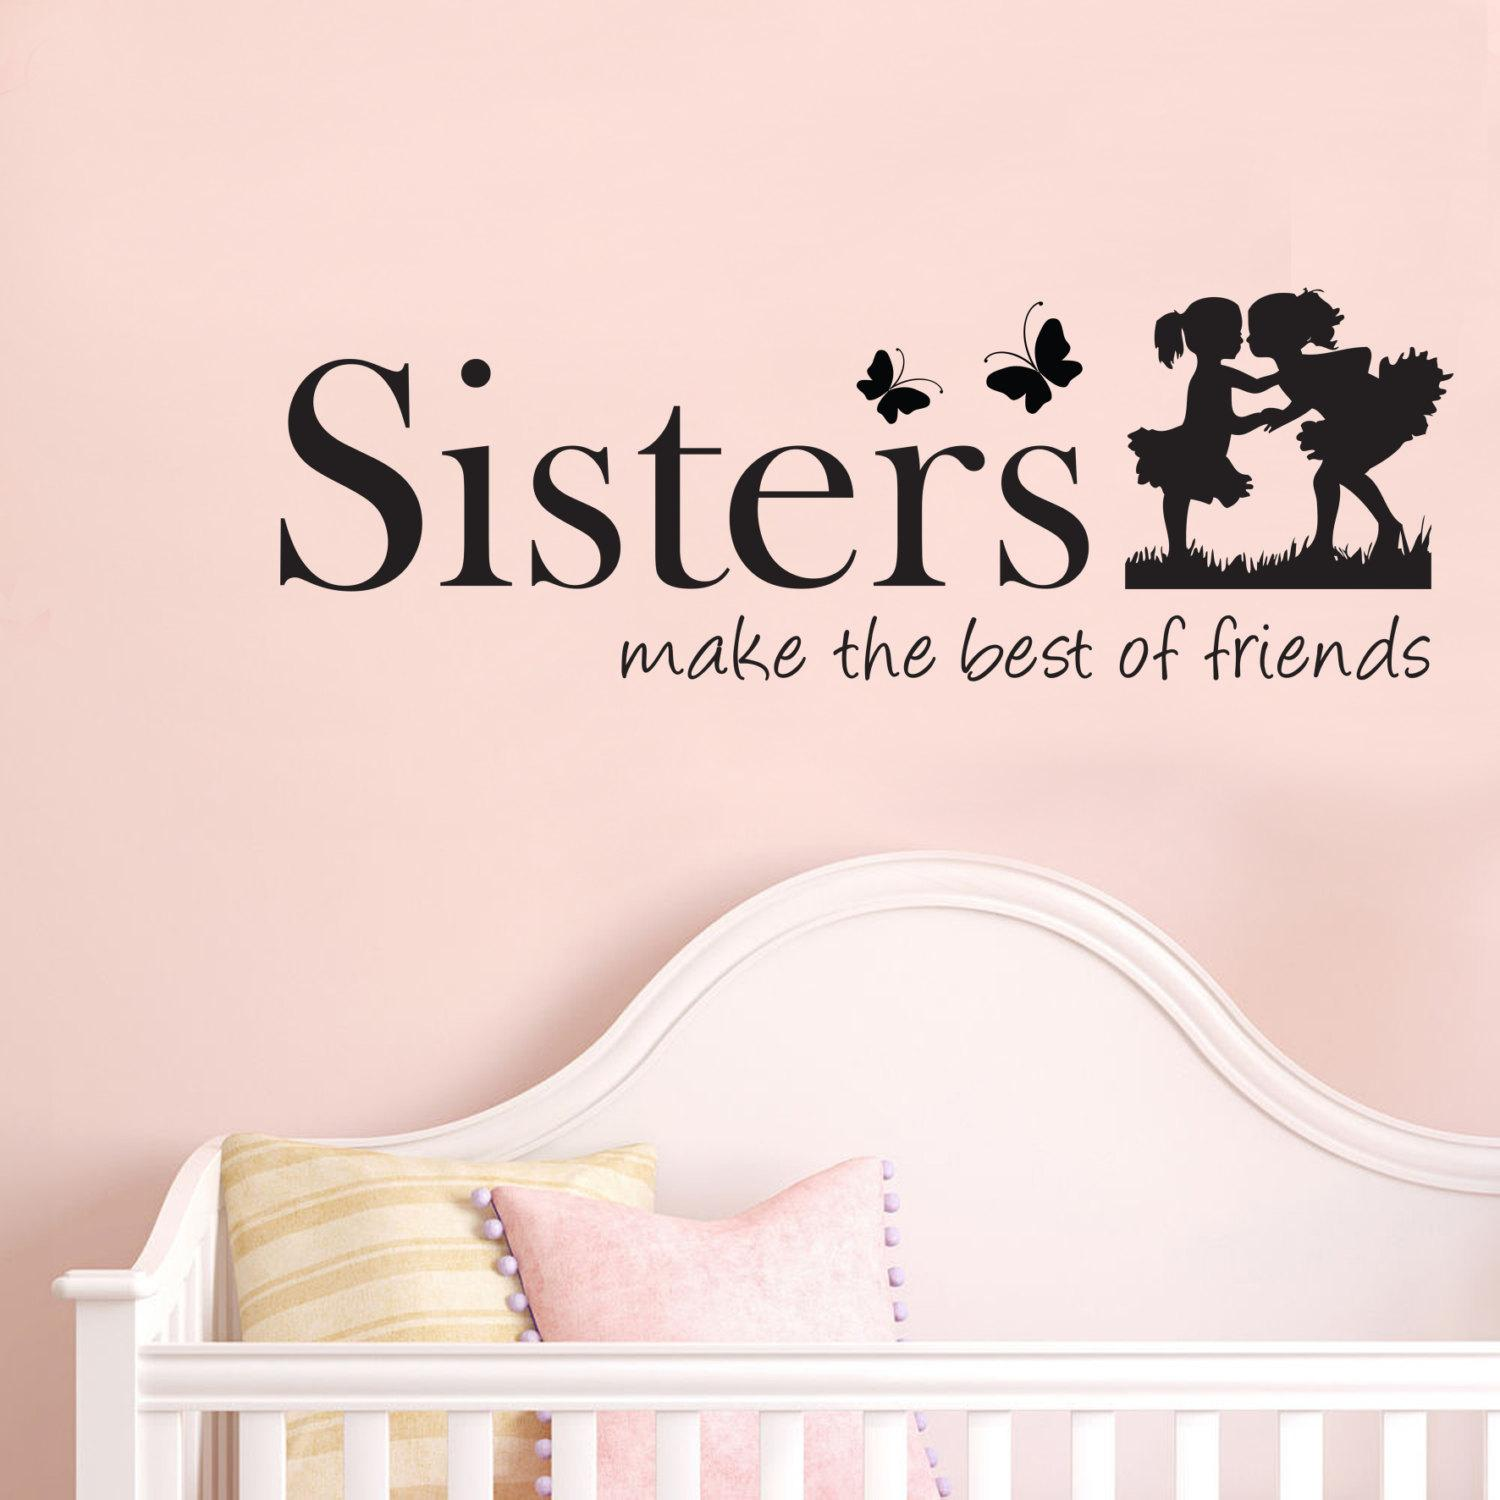 Sisters Make The Best Of Friends Quote Vinyl Wall Art Decals Wall Stickers  For Kids Bedroom White Tree Wall Stickers White Vinyl Wall Decals From  Flylife, ...